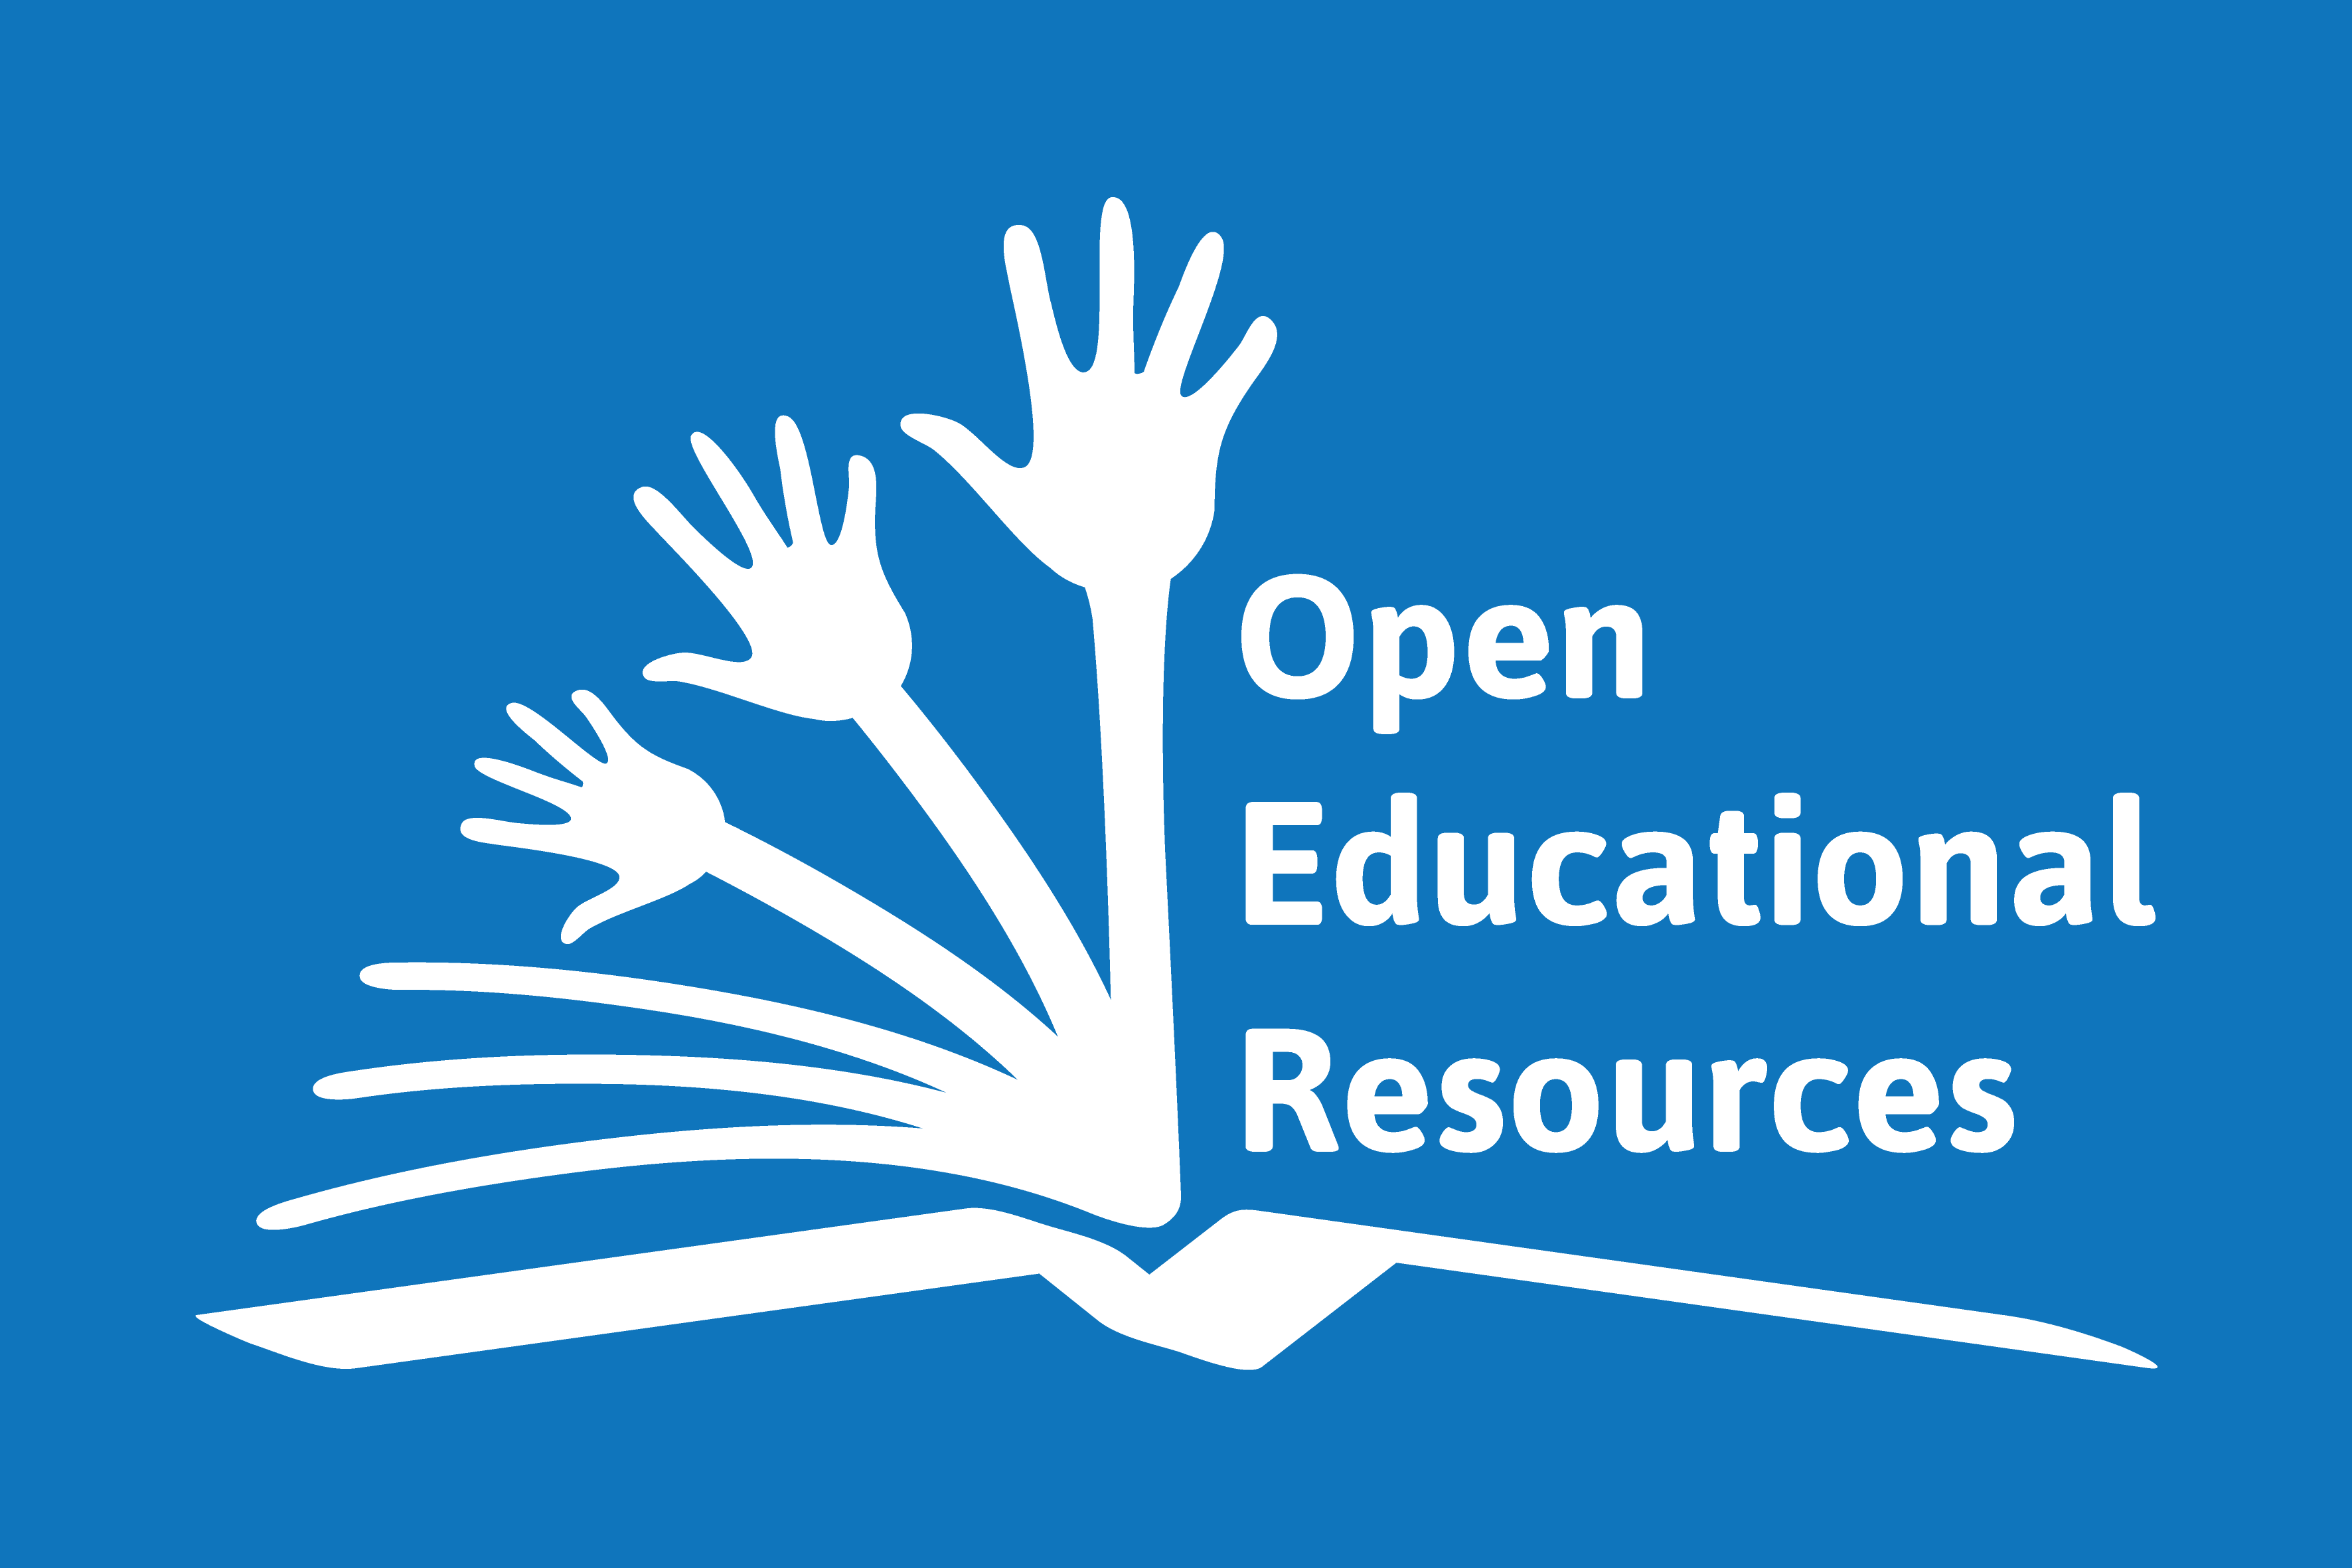 Unesco Open Educational Resources Http Www Oerplatform Org Teaching Learning Or Research Materia Open Educational Resources Educational Resources Education